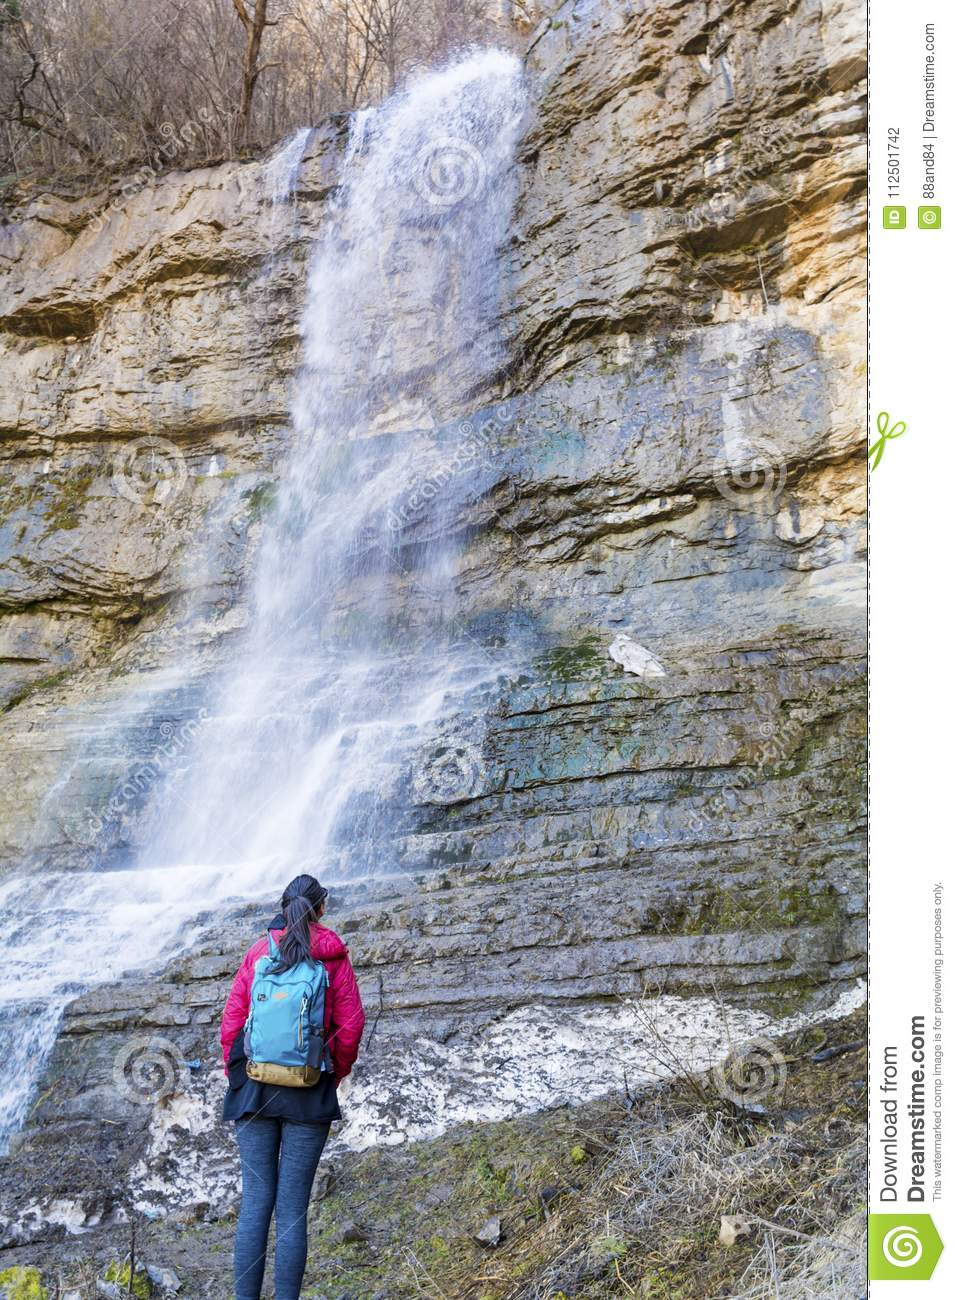 Hiker Woman Looking a Big Waterfall in the Rocks